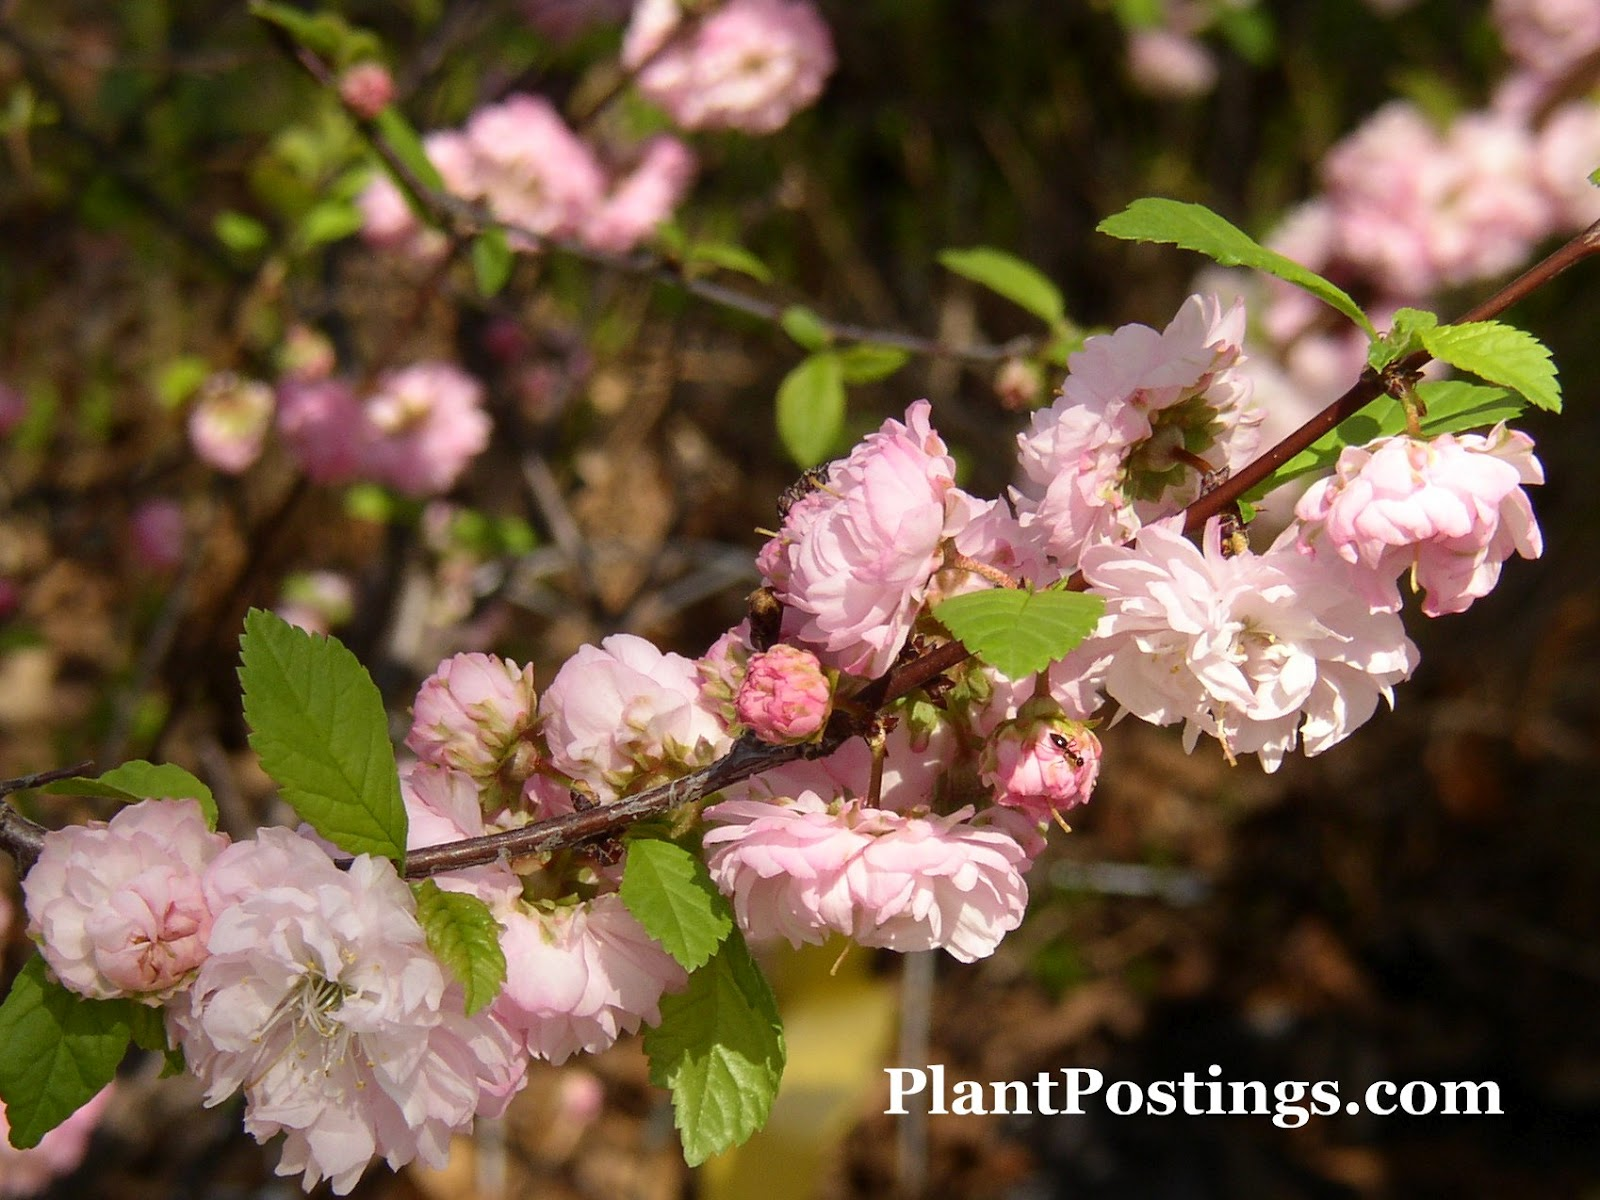 PlantPostings: My imaginary spring bouquet